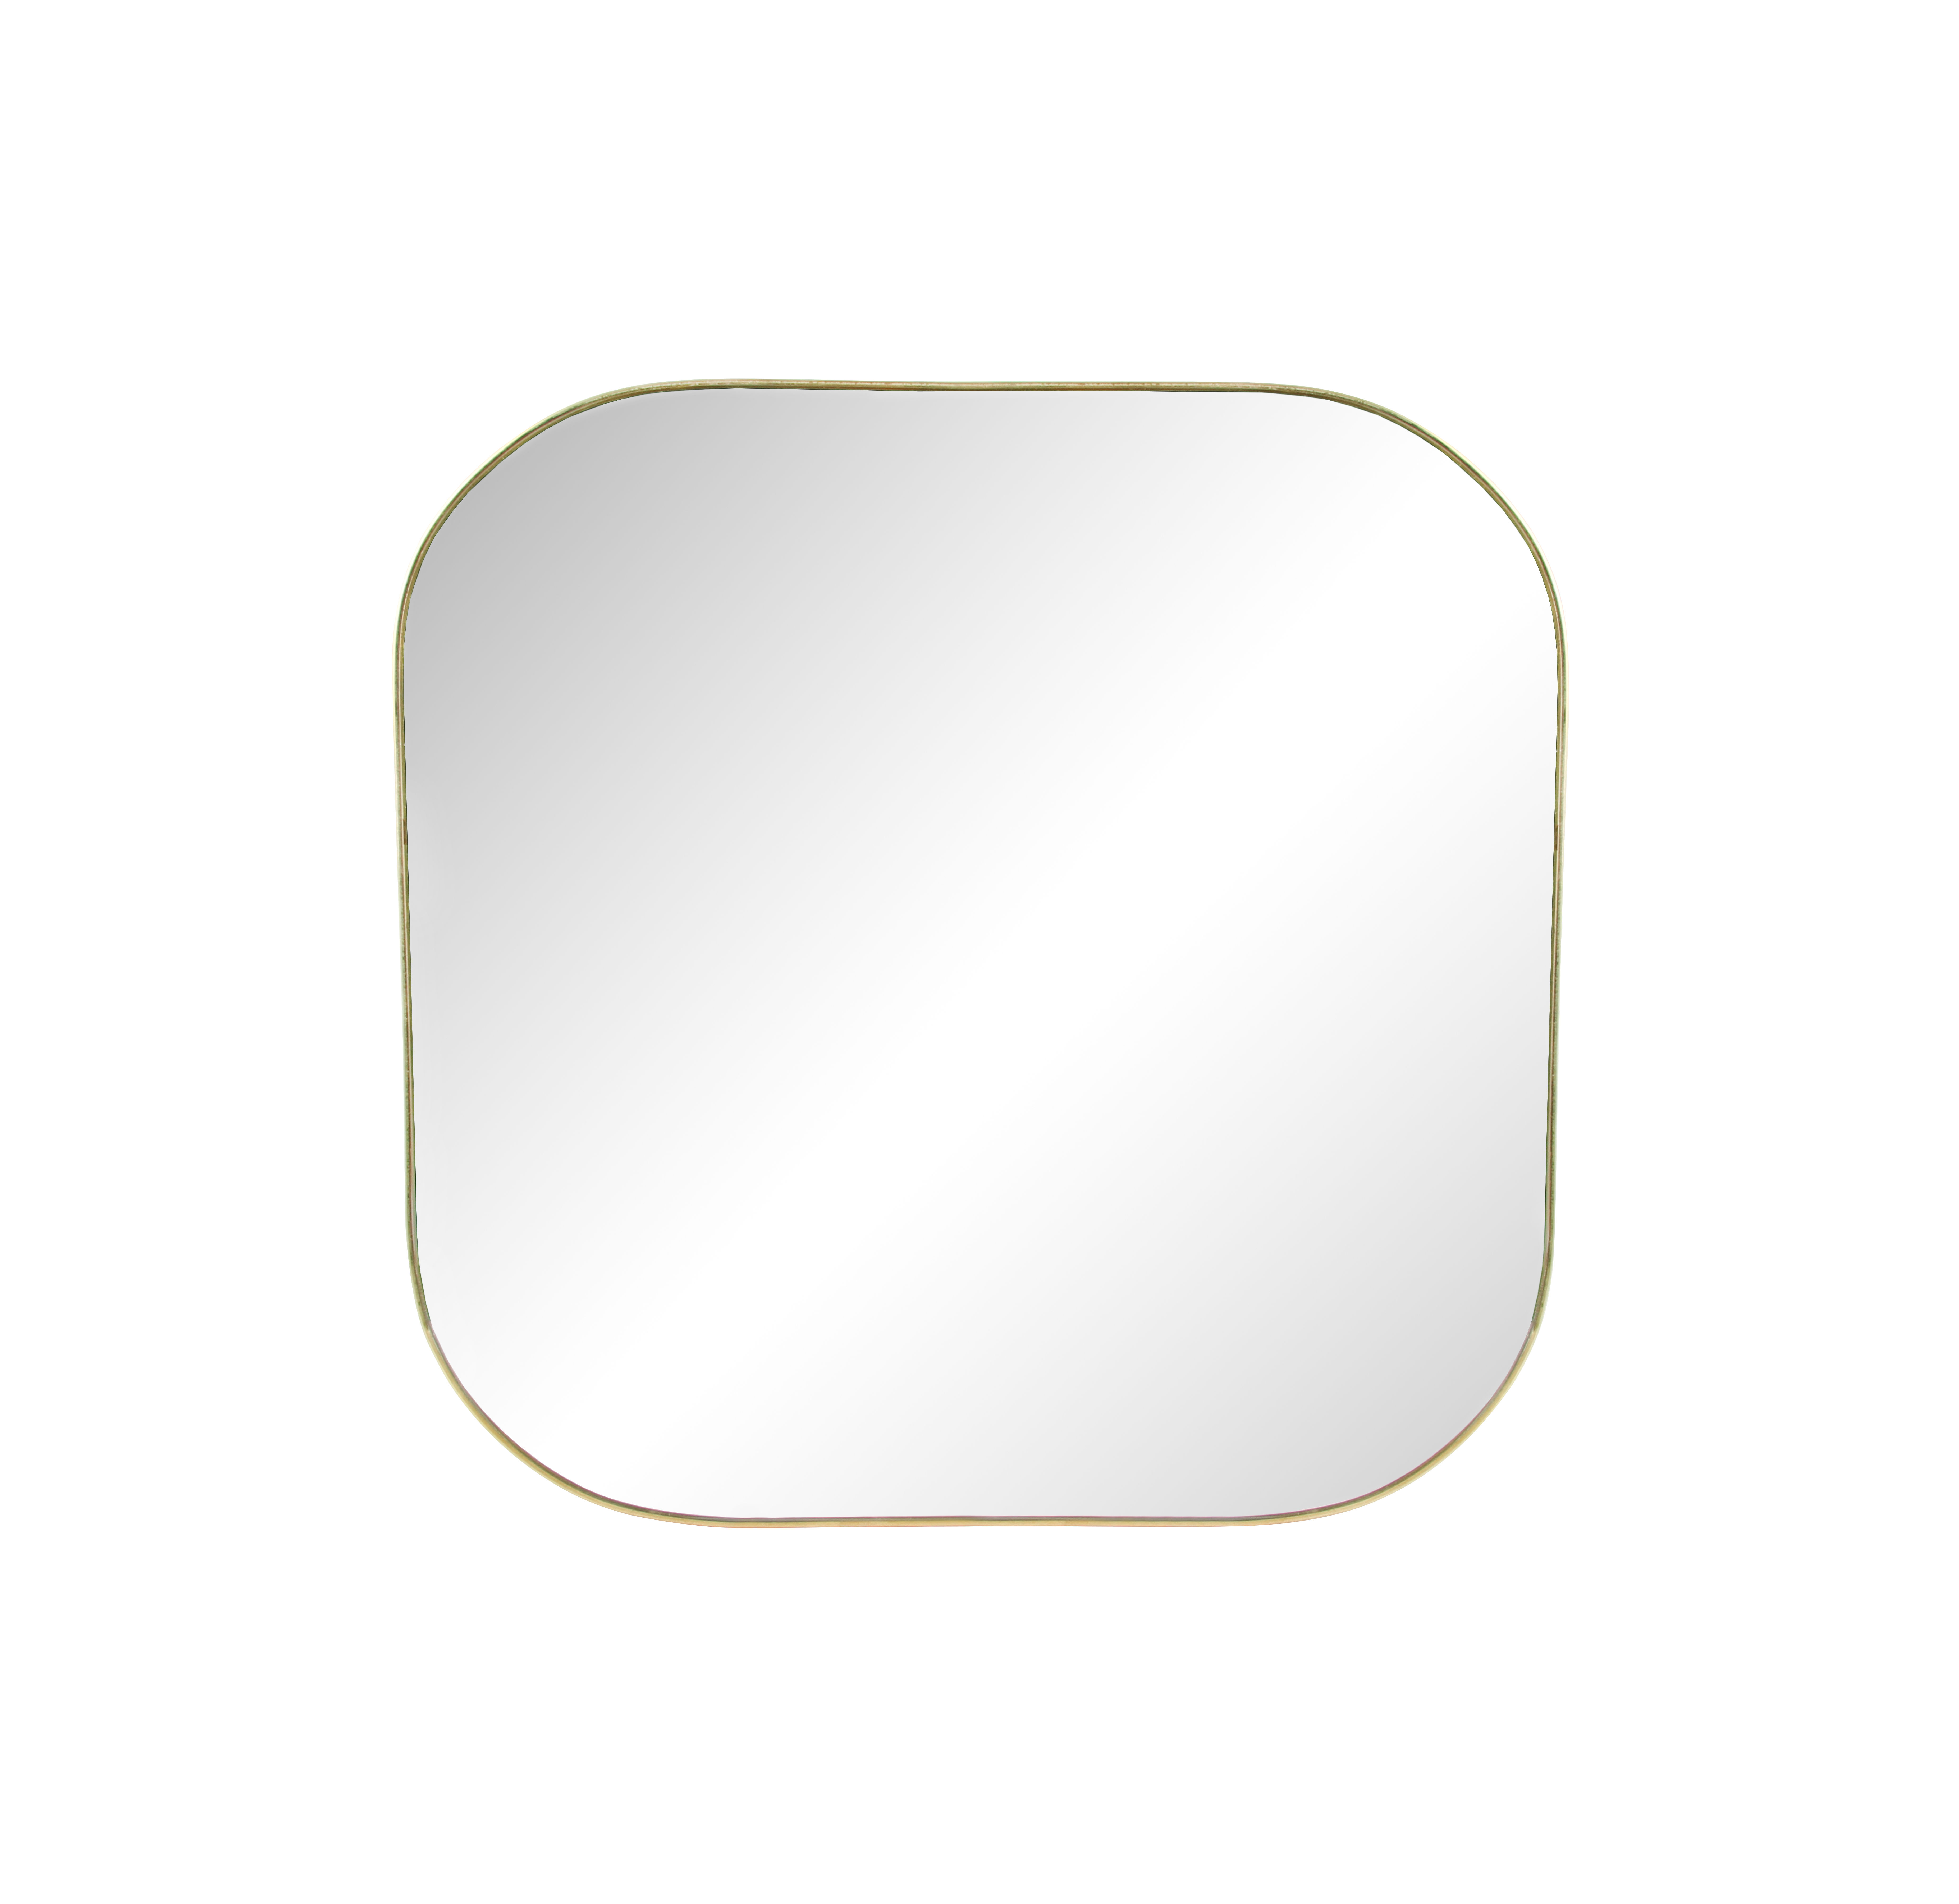 Decoration - Mirrors - Gold Square Wall mirror - / 30 x 30 cm by & klevering - Square / Brass - Glass, Metal